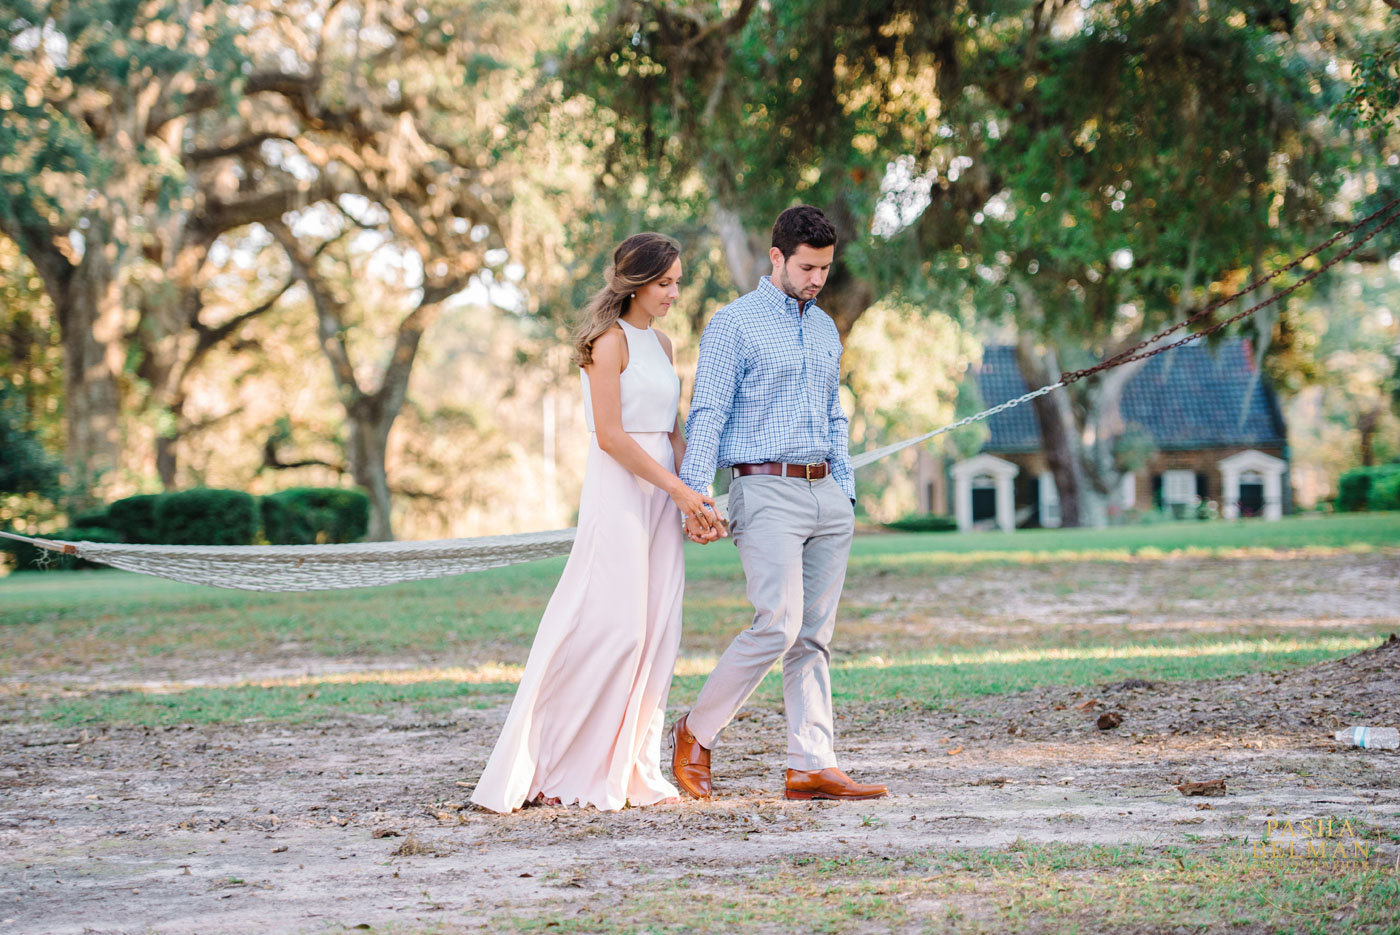 Charleston Engagement Photography | Fine Art Film Inspired Engagement Photography in Charleston, South Carolina | Live Oaks | Engagement Photography Ideas fof Couples with Dogs